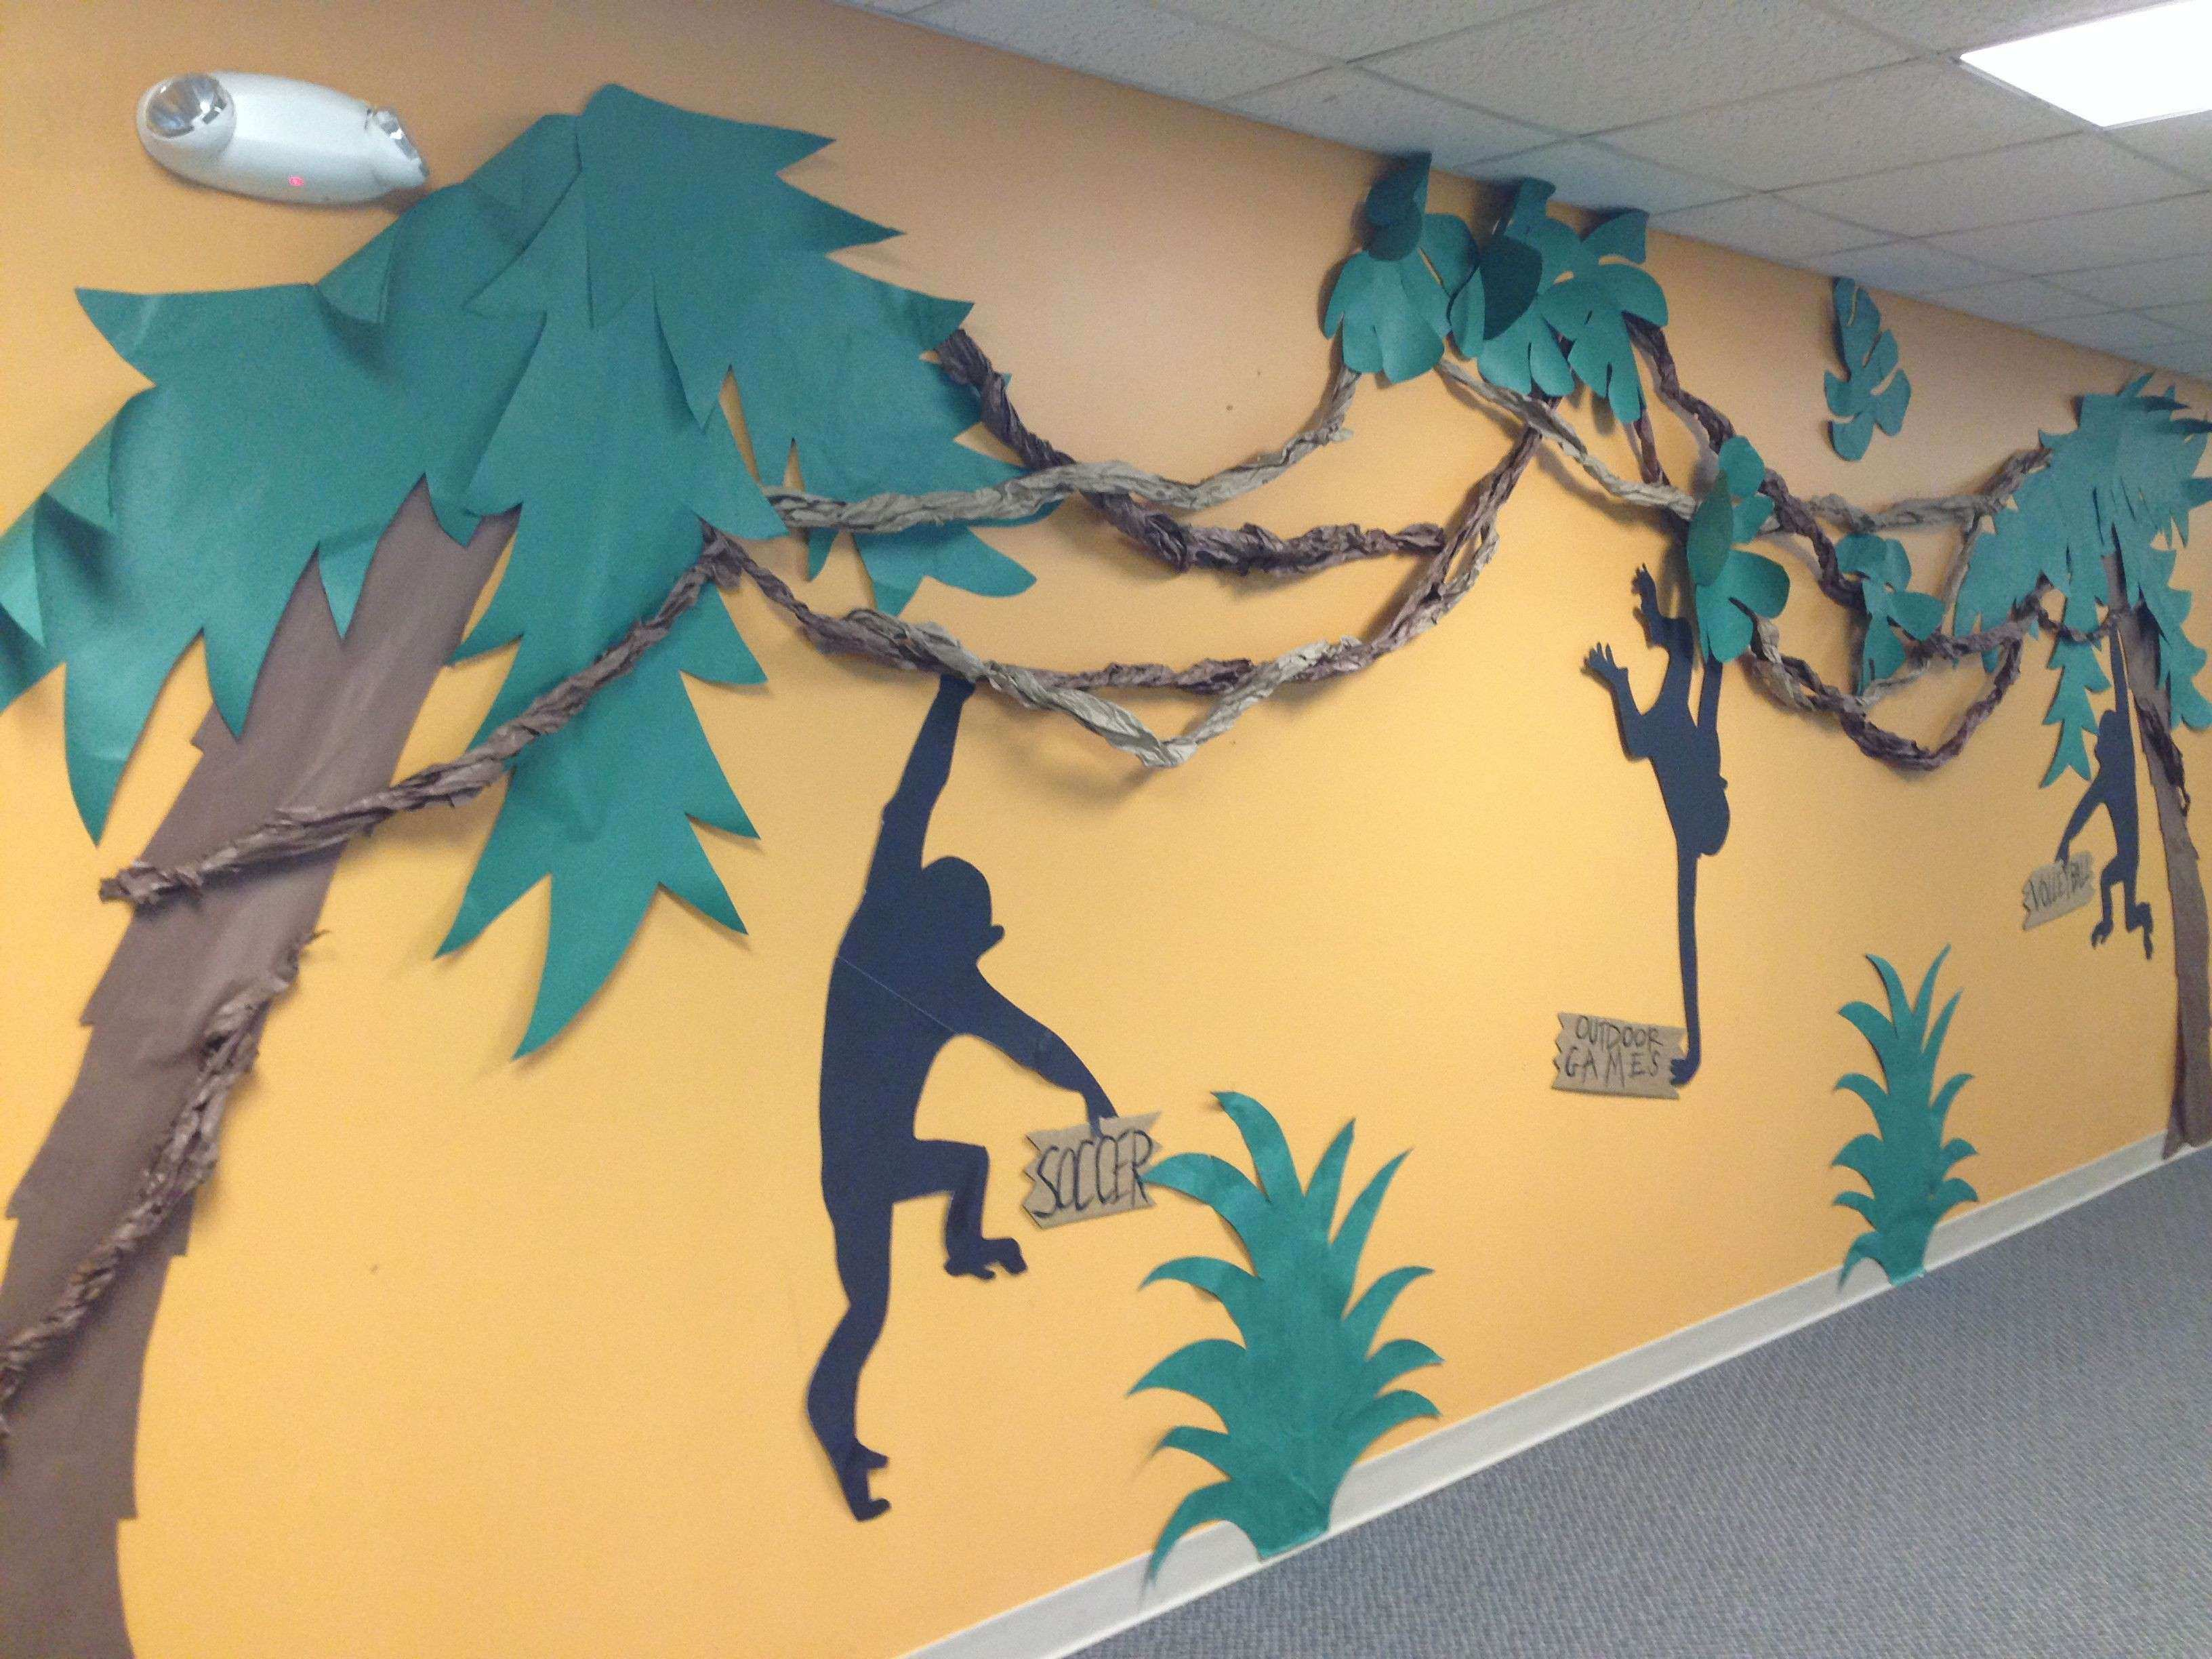 How to Make Wall Prints Lovely Journey Off the Map Vbs Decorations ...